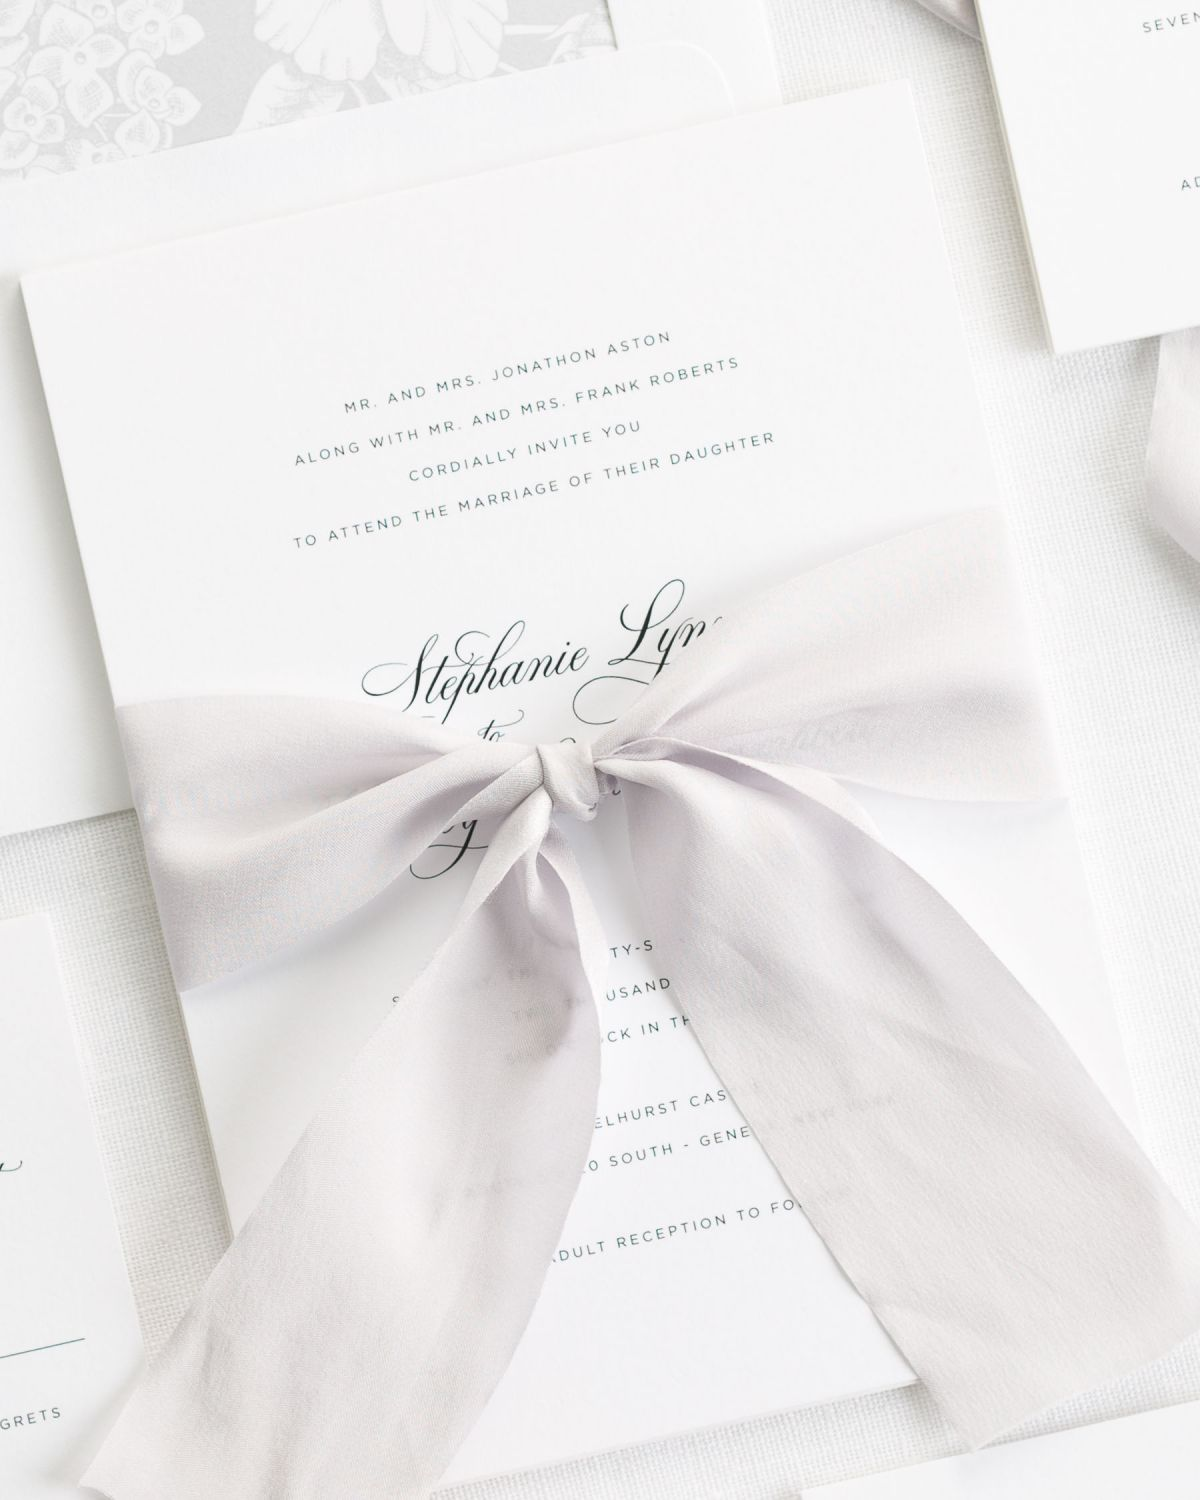 Wedding Invitations With Ribbons: Delicate Elegance Ribbon Wedding Invitations